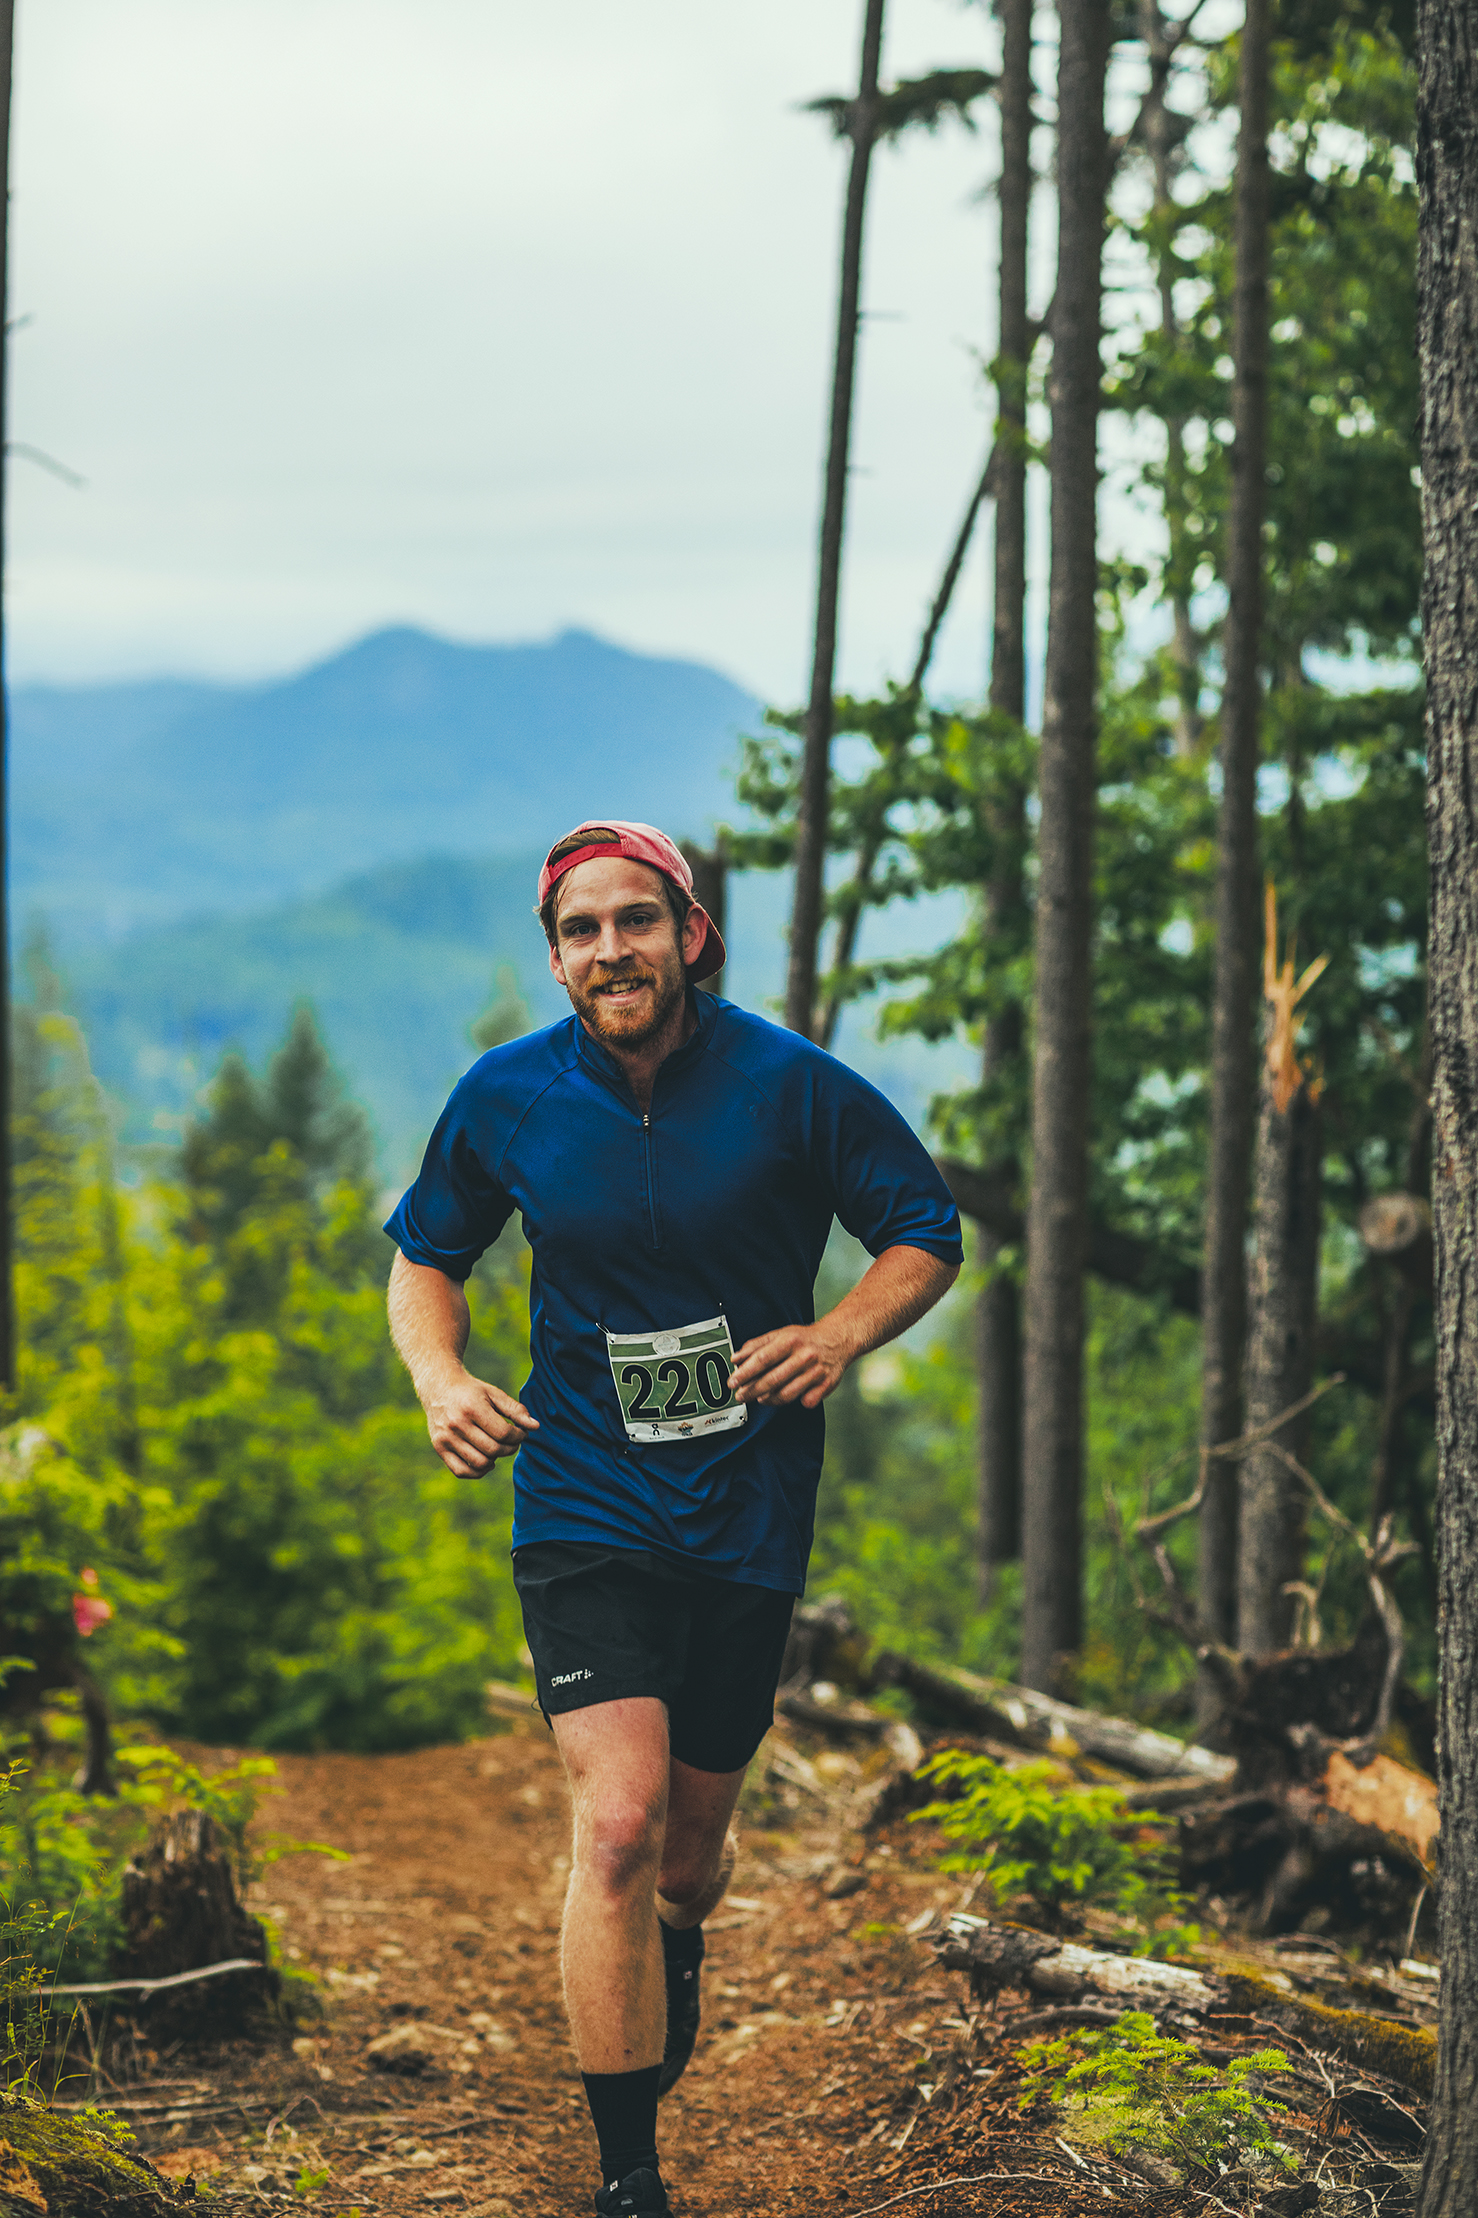 Fraser Valley Trail Races - Bear Mountain - IMG_1641 by Brice Ferre Studio - Vancouver Portrait Adventure and Athlete Photographer.jpg